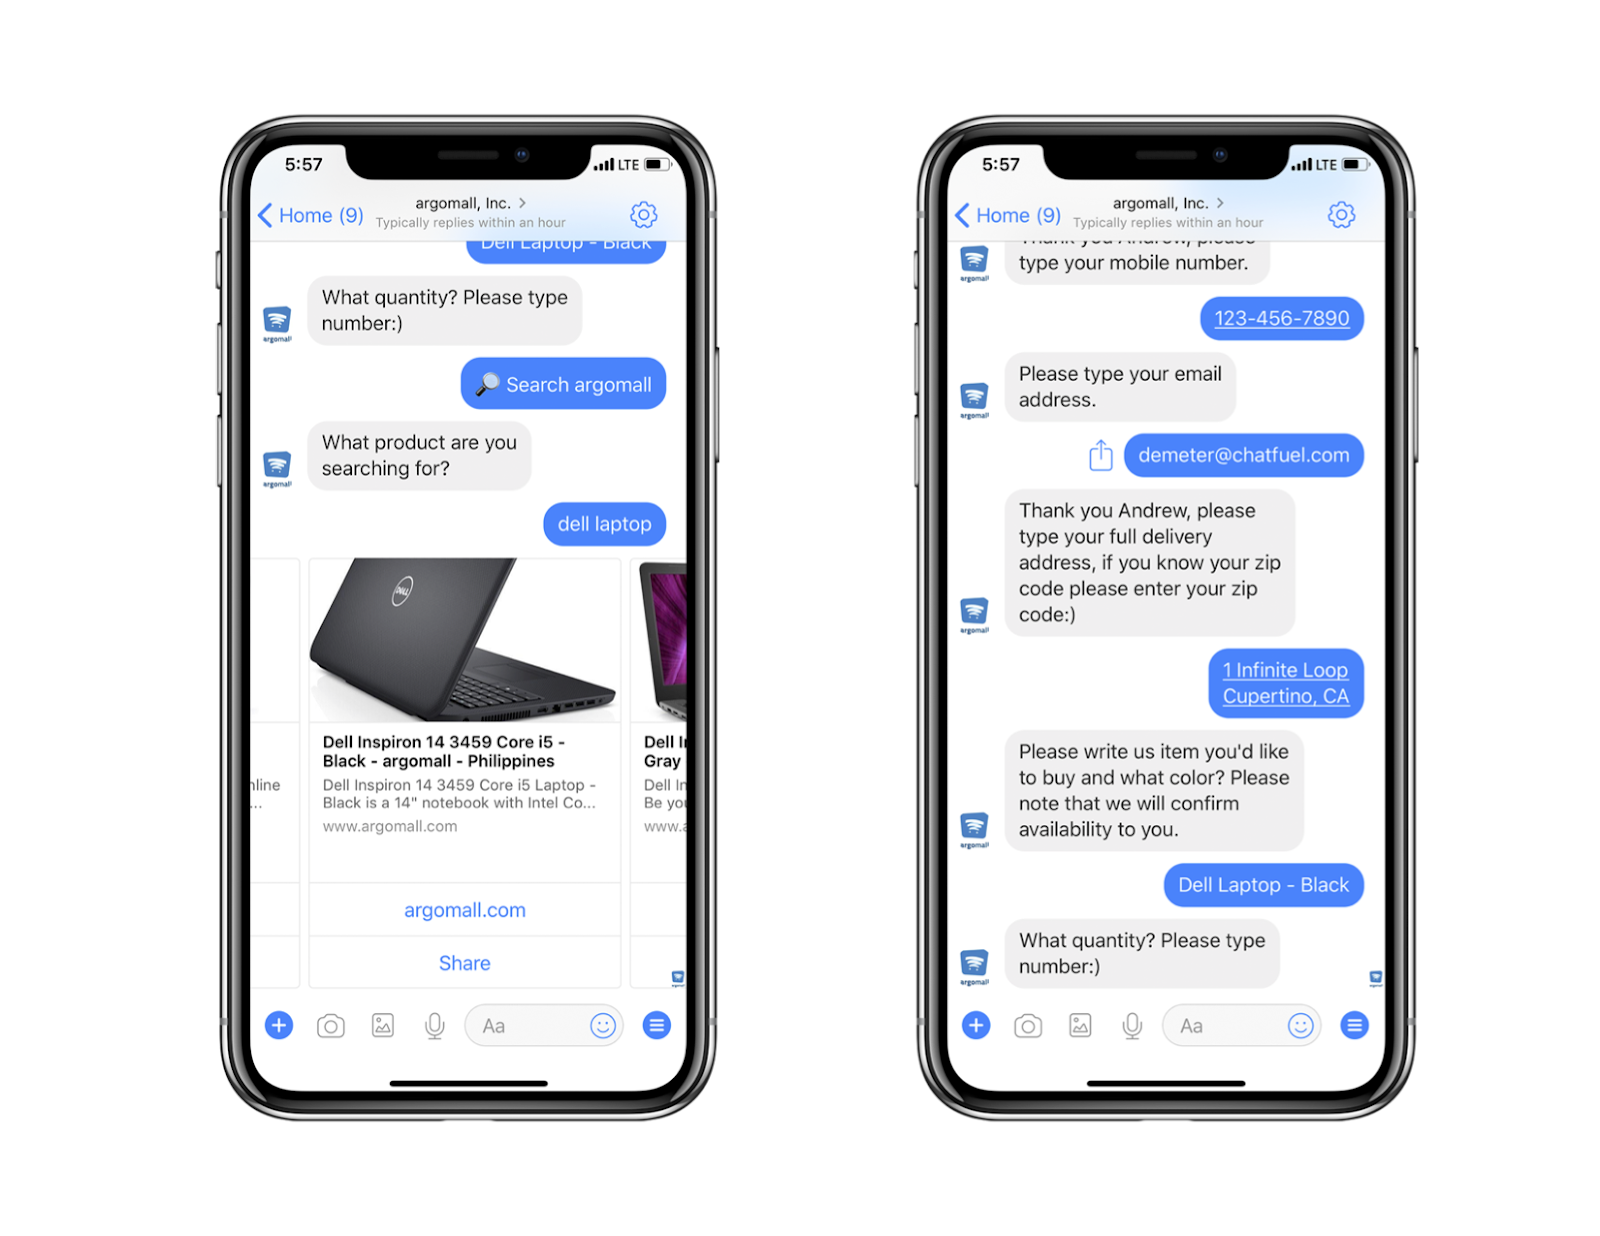 Chatbot Examples: Argomall